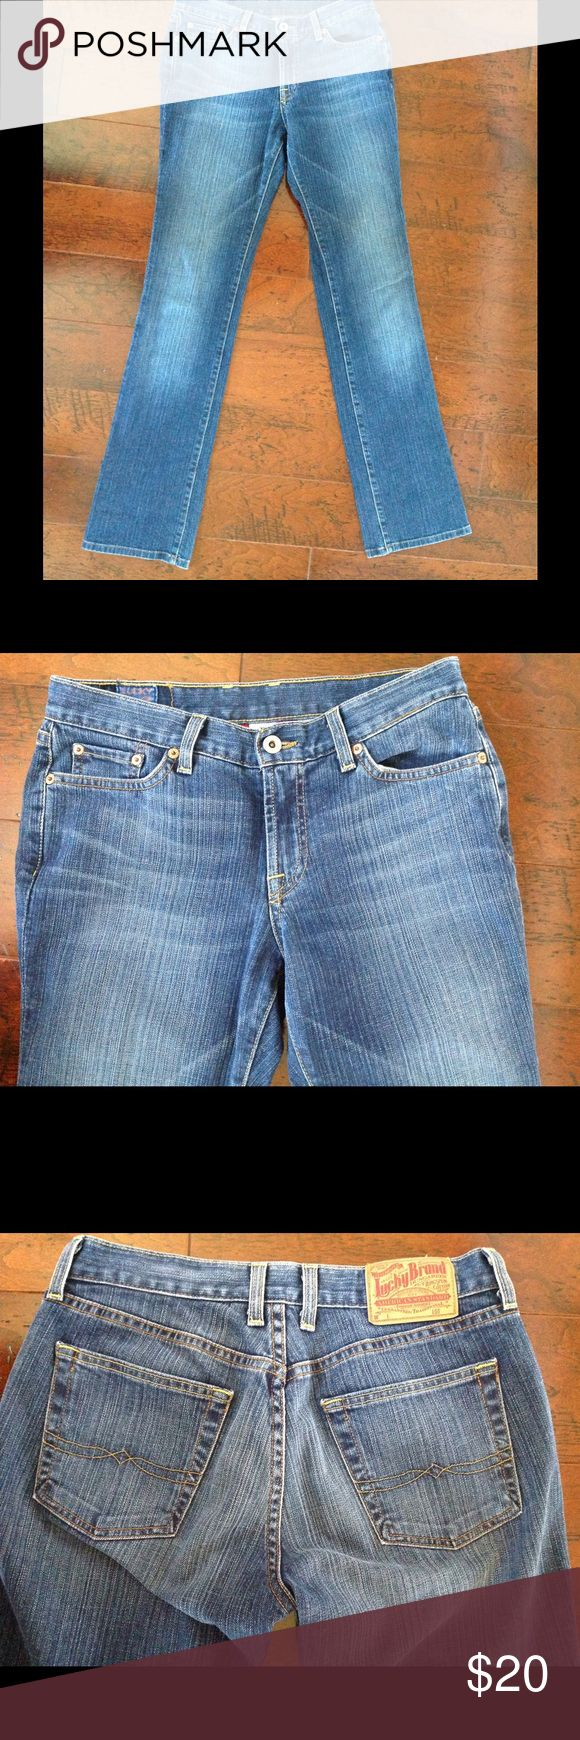 "Women's Lucky Brand Classic Rider Jean Lucky Brand Classic Rider Jean, worn maybe 3 times. Inseam 33 1/2, 98% cotton, 2% spandex. Measures 15"" flat. Lucky Brand Jeans Boot Cut"